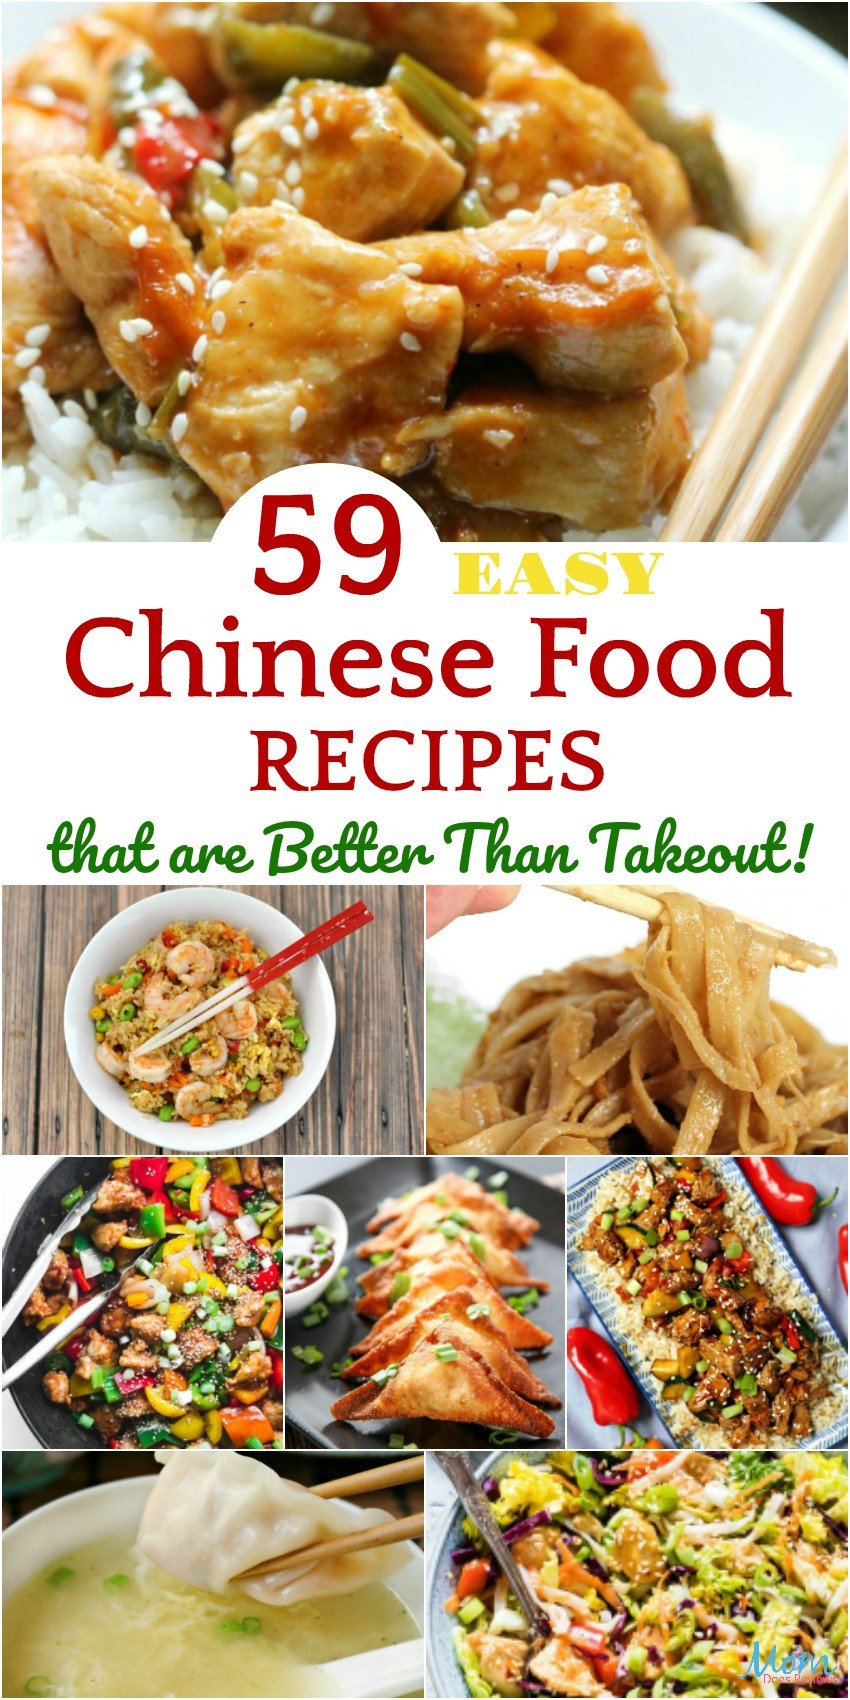 Easy Chinese Food Recipes  59 Easy Chinese Food Recipes that are Better Than Takeout